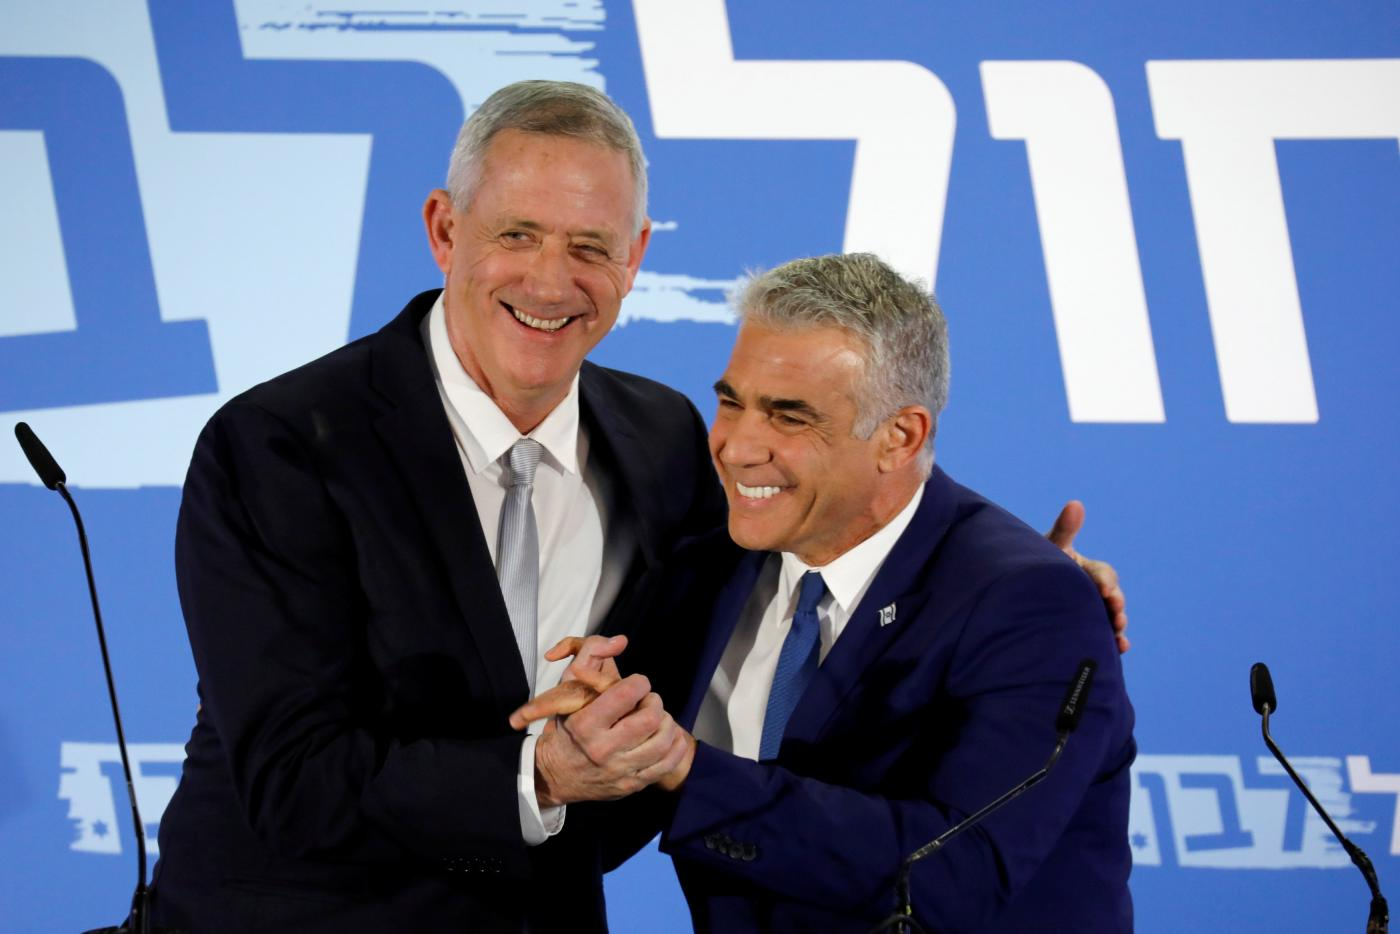 Benny Gantz, head of Resilience party and Yair Lapid, head of Yesh Atid, hold a news conference to announce the formation of their joint party (Reuters)